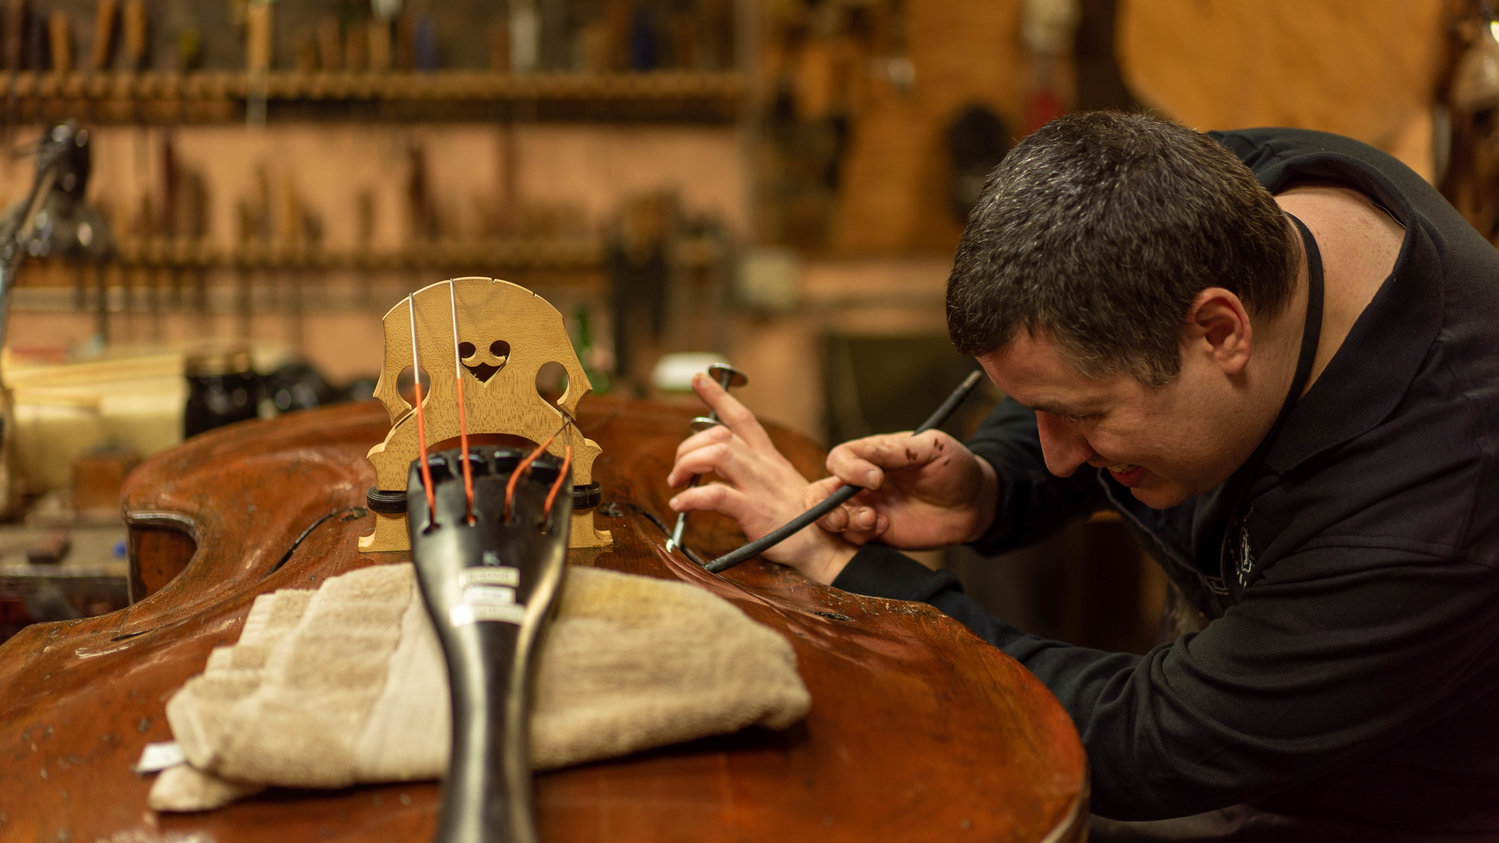 Kris Fleischmann worked on an instrument in one of the back rooms of the Samuel Kolstein Violin Shop after a Feb. 4 grand reopening ribbon-cutting ceremony, which celebrated longtime owner Barrie Kolstein passing his duties to Manny Alvarez.